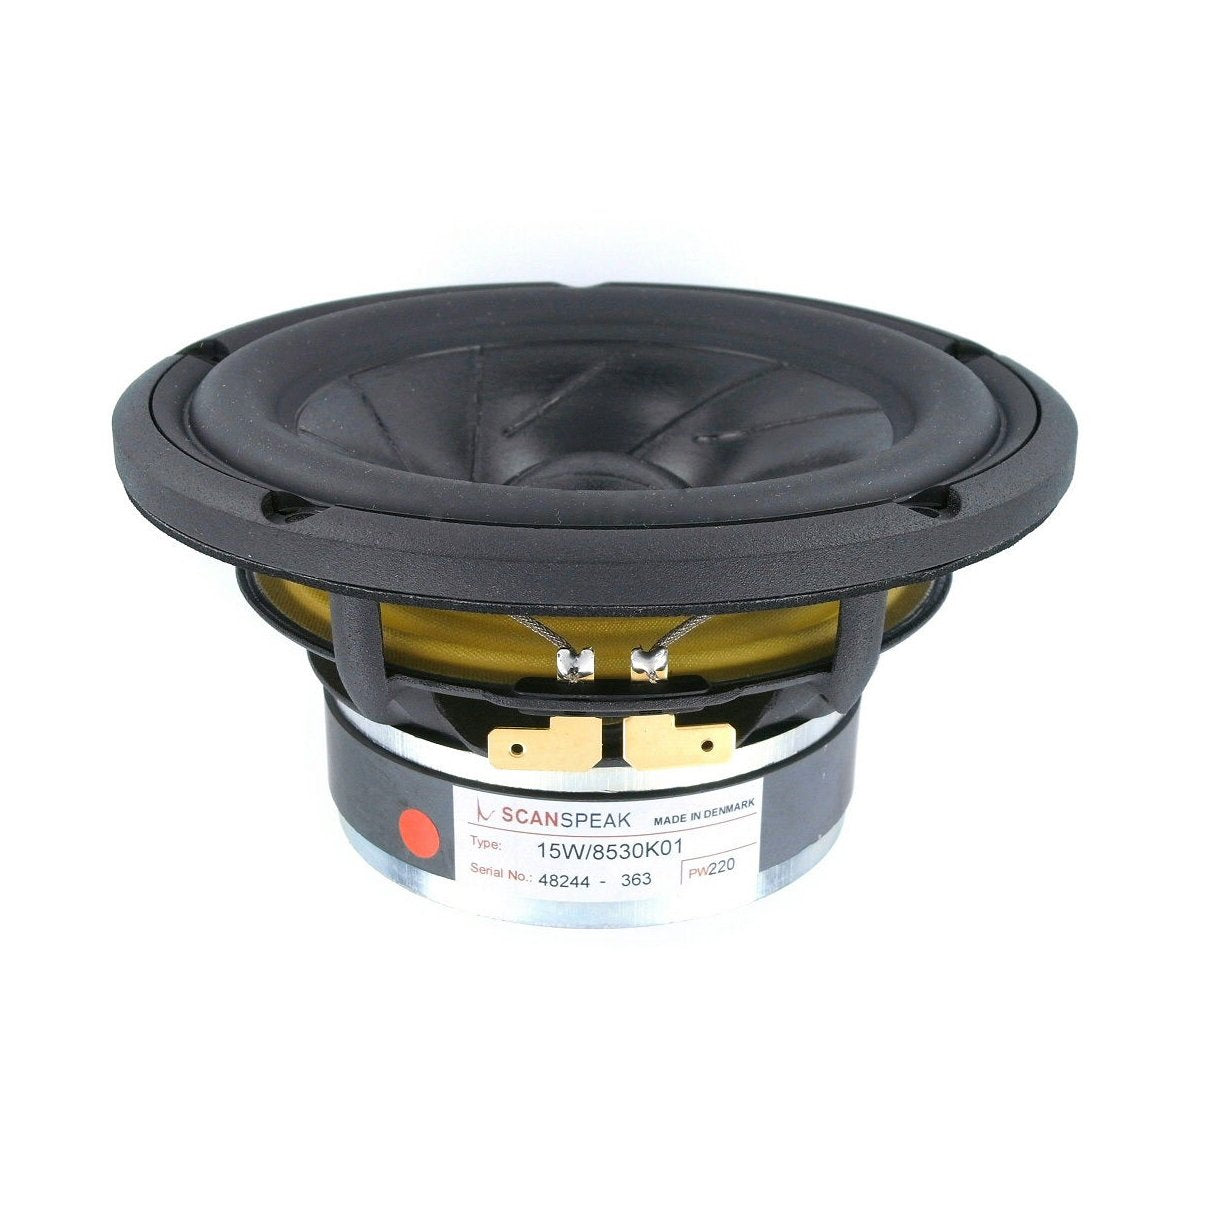 Scanspeak Revelator 15W/8530K01 Midwoofer - Willys-Hifi Ltd